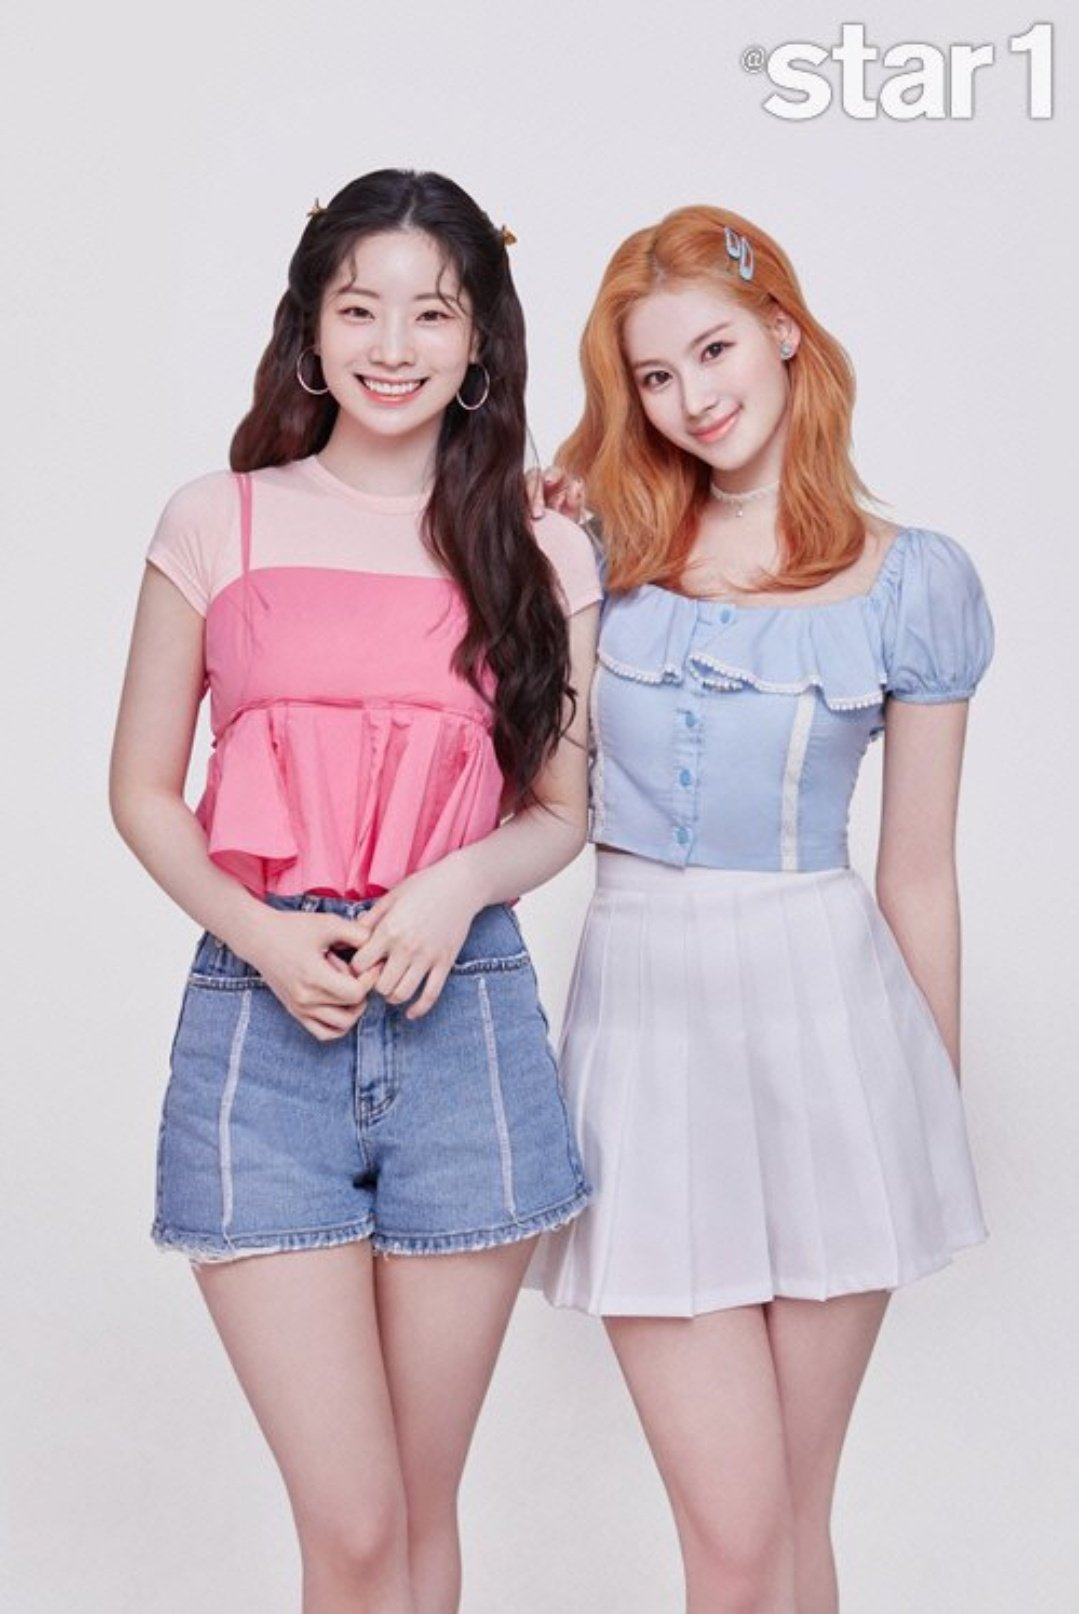 TWICE's Sana And Dahyun Talk About Their Chemistry, Missing Their Fans, And More | Soompi